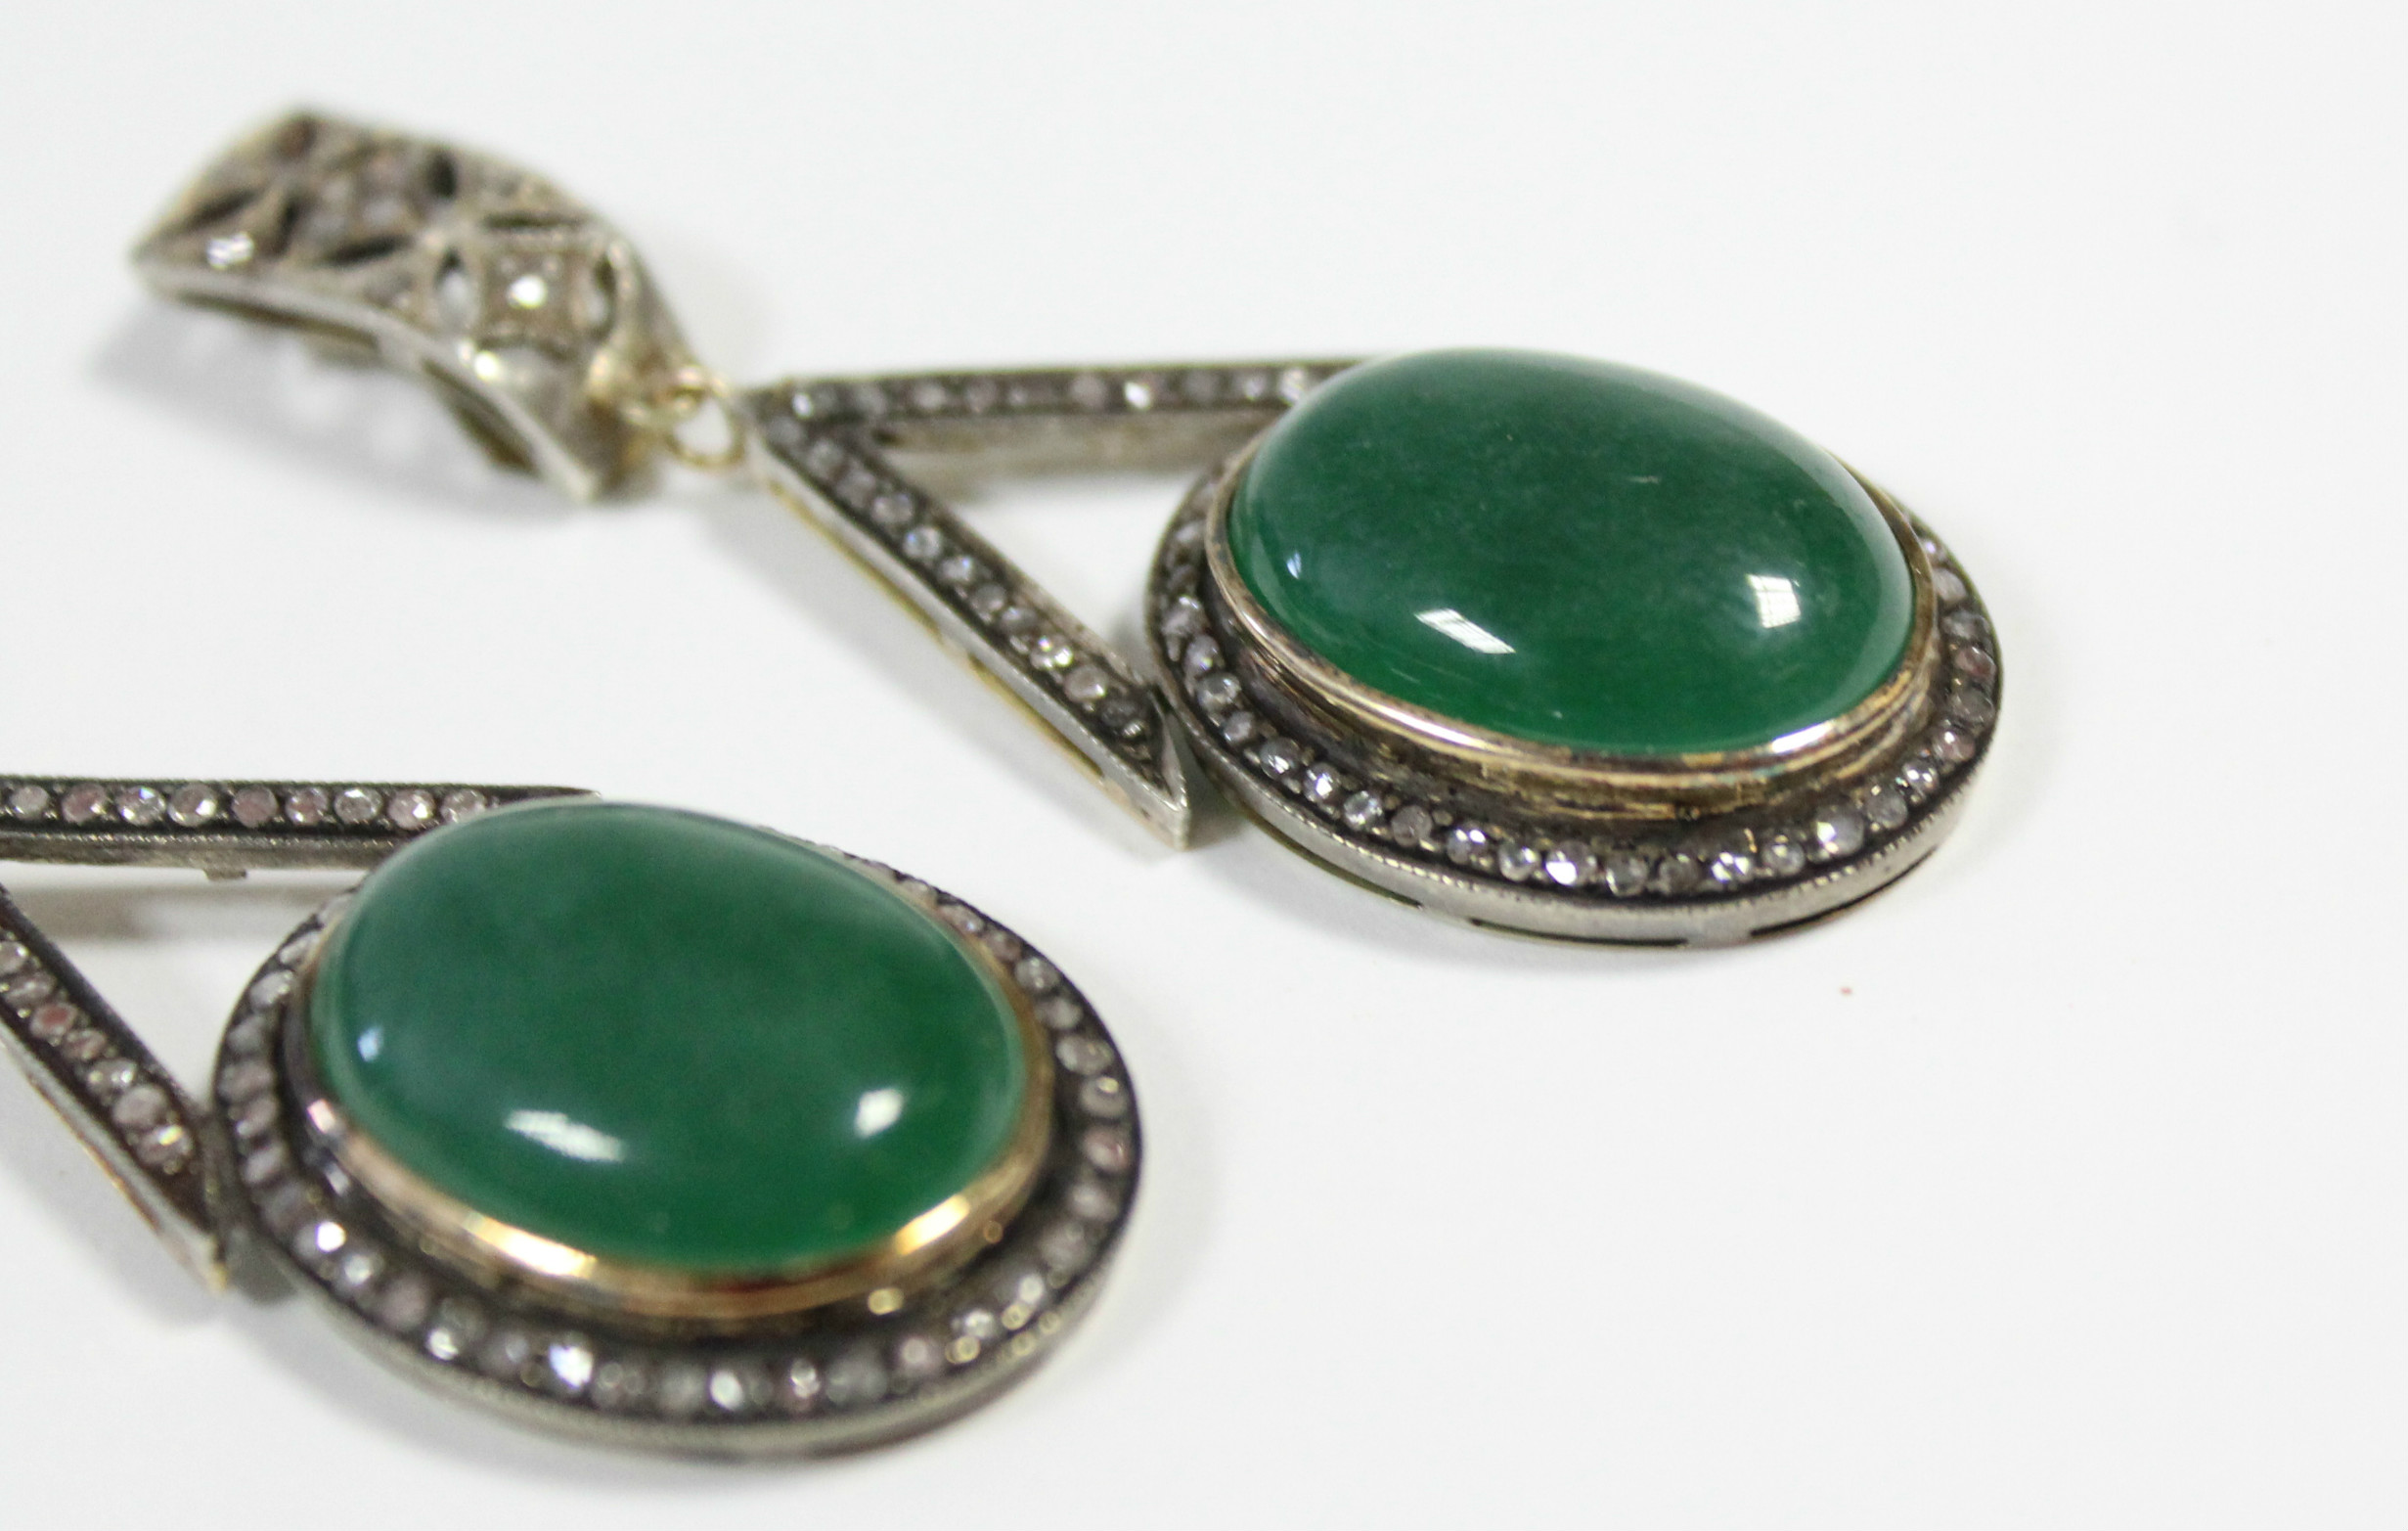 A PAIR OF JADE & DIAMOND PENDANT EARRINGS, each with oval green jade cabochon suspended from an - Image 4 of 6